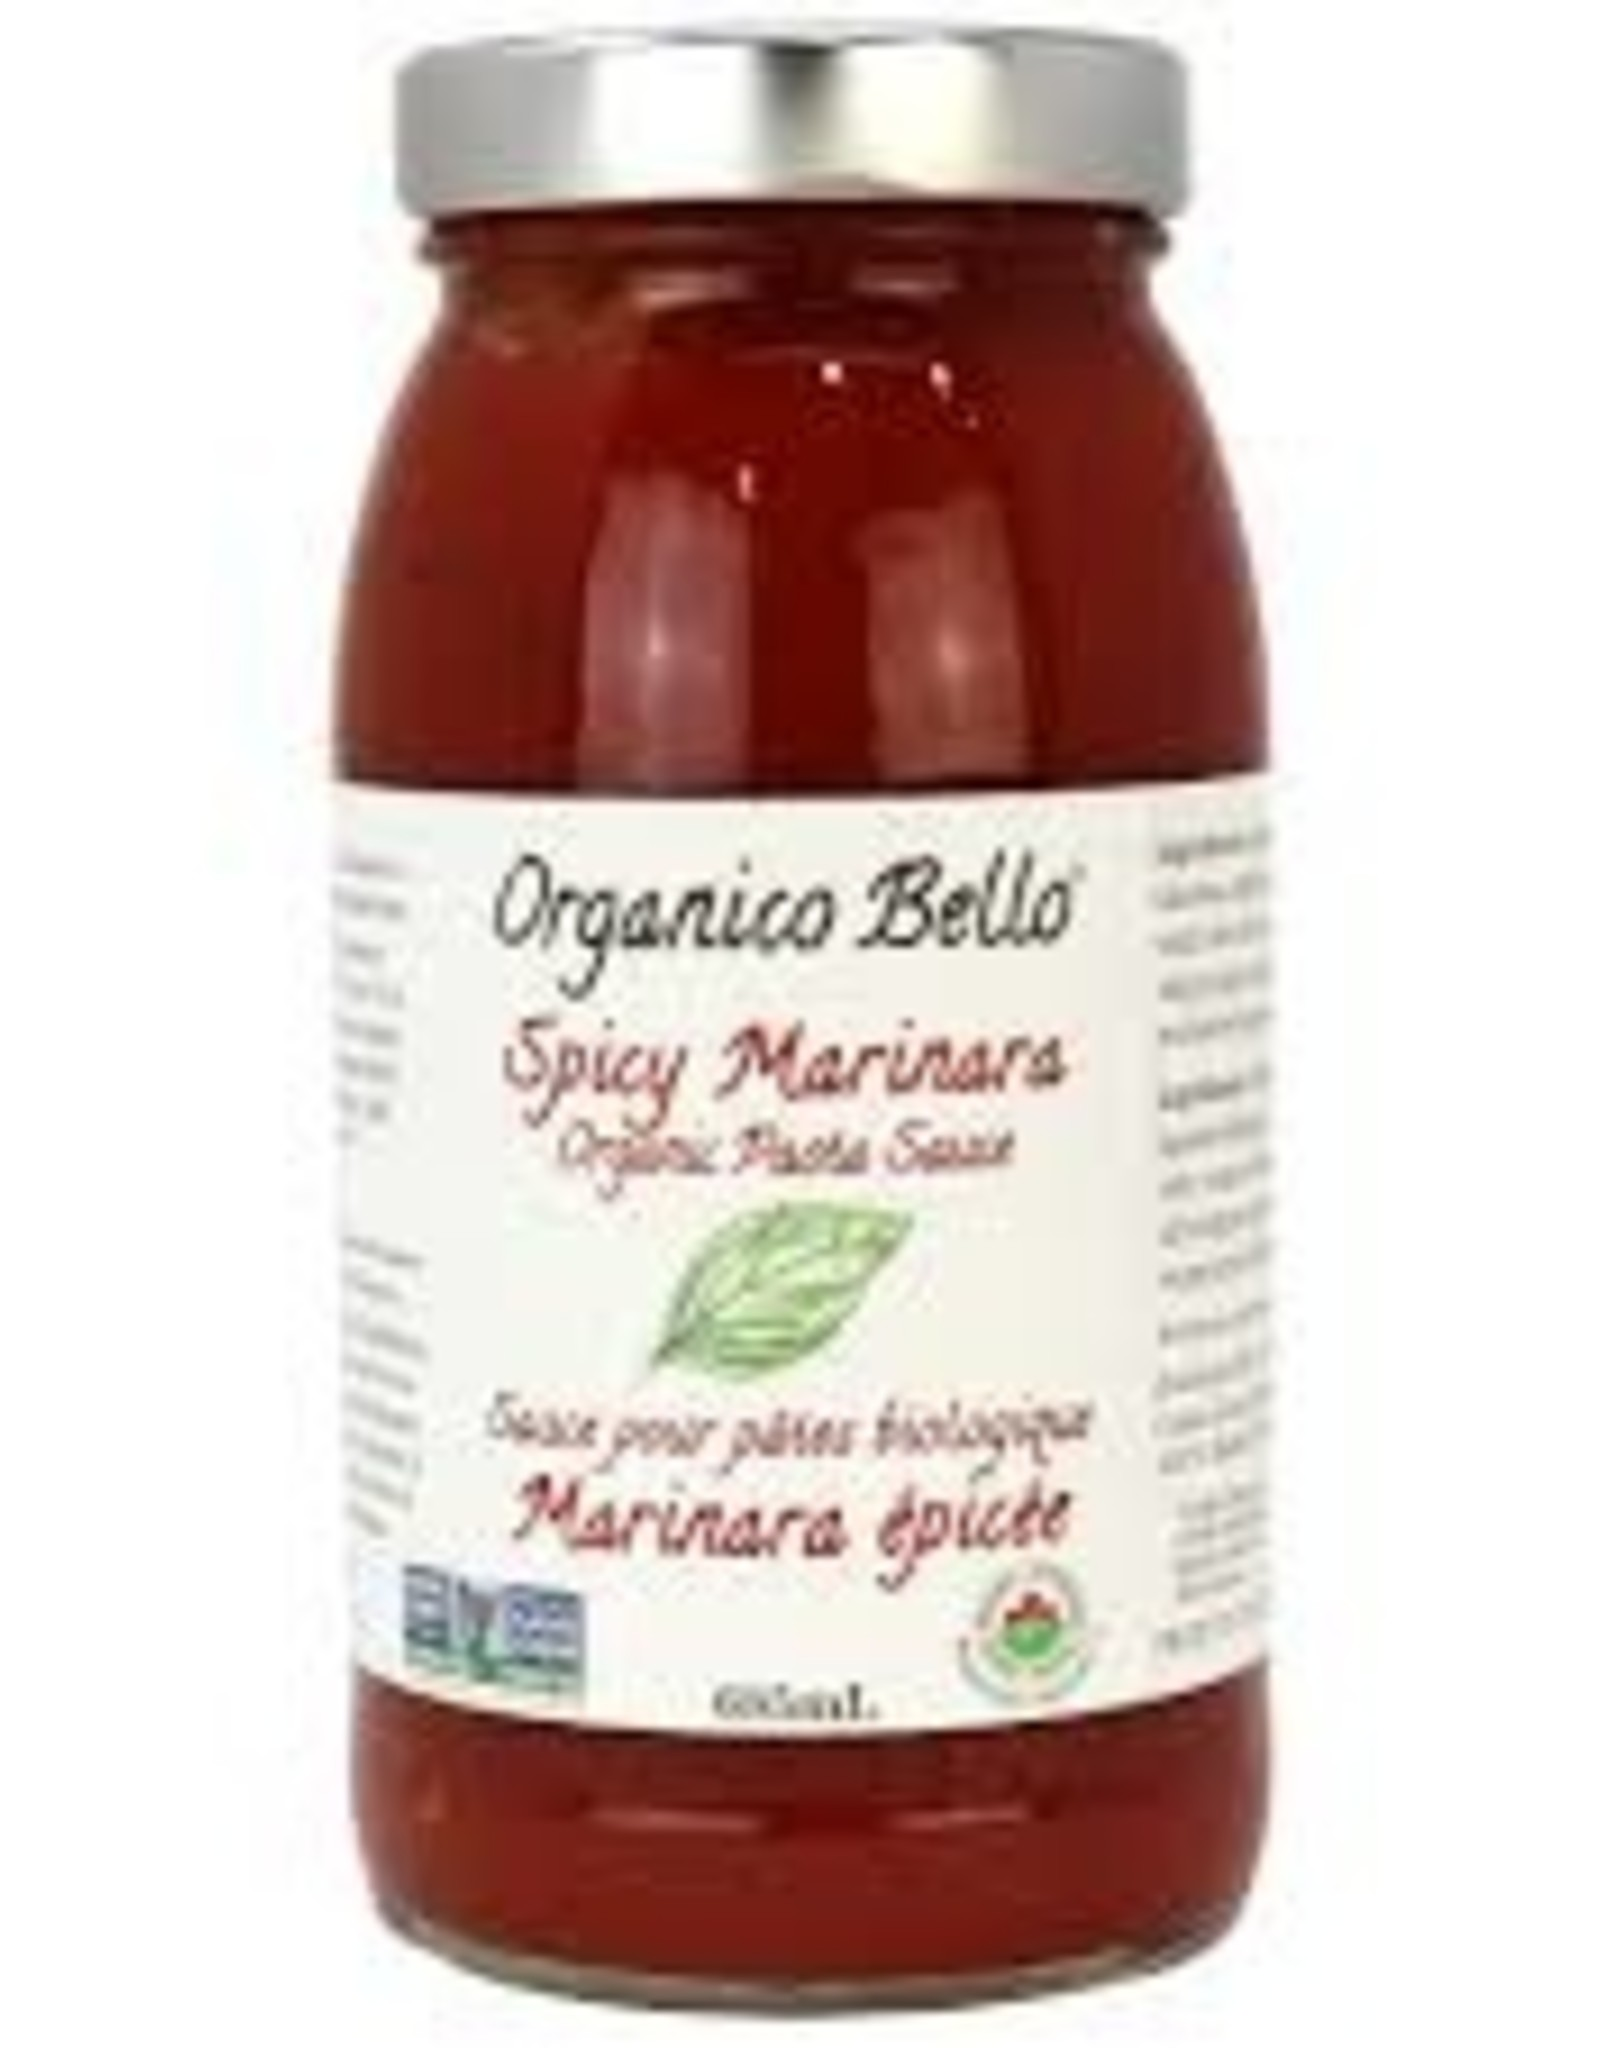 Organico Bello Organico Bello - Pasta Sauce, Spicy Marinara